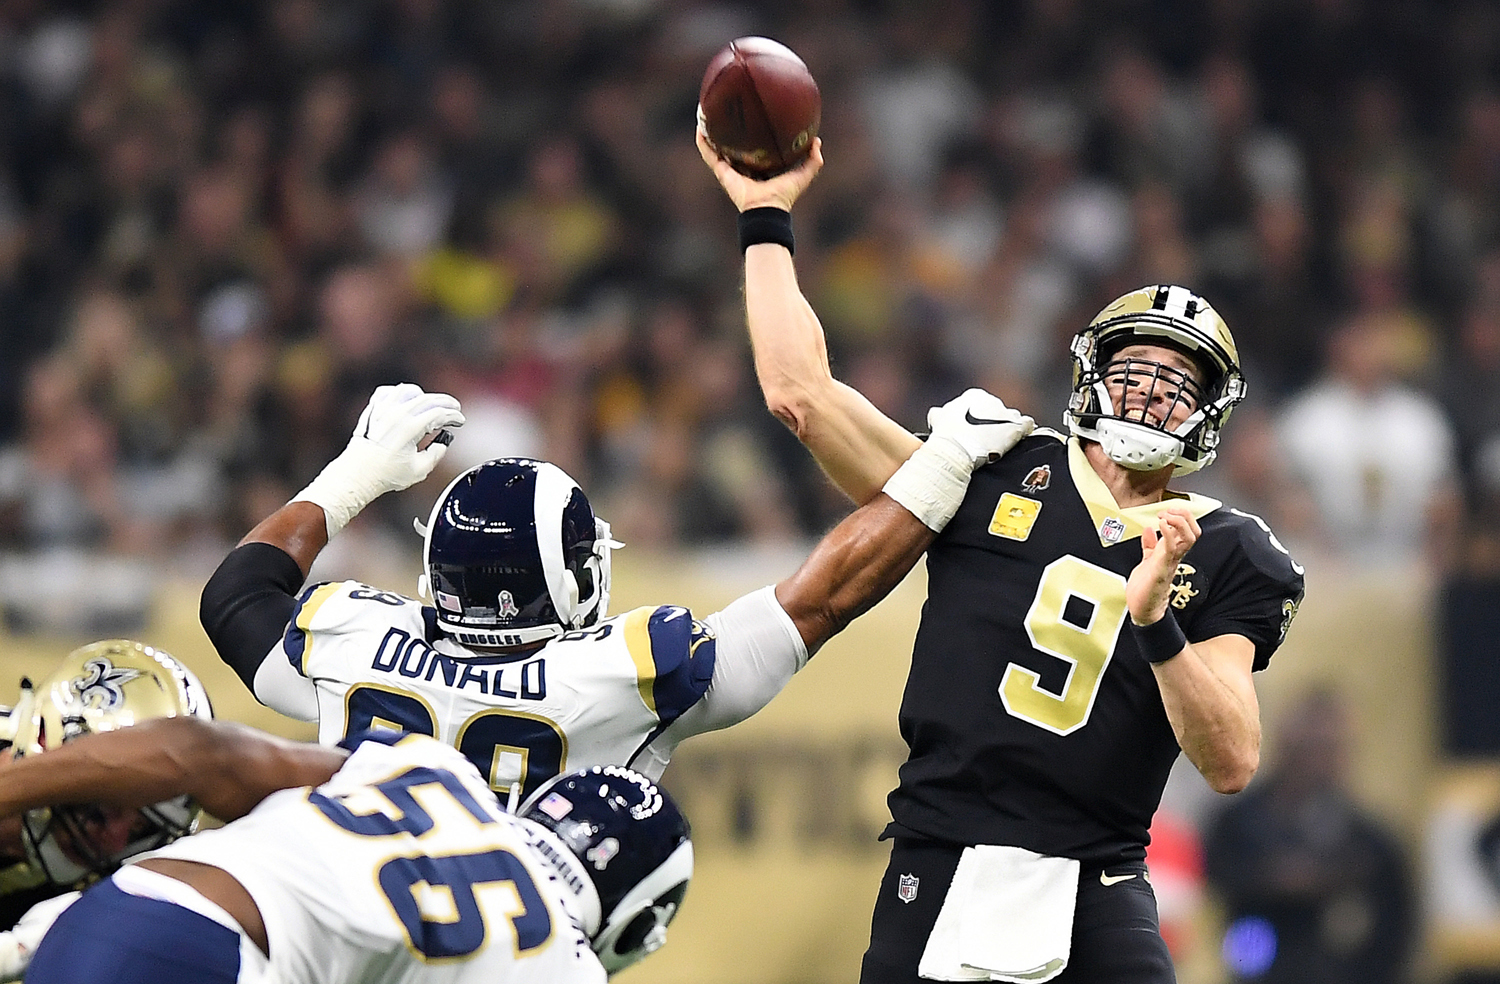 Los Angeles Rams' Aaron Donald gets an arm on New Orleans Saints quarterback Drew Brees (9) on Sunday, Nov. 4, at the Mercedes Benz Superdome in New Orleans.